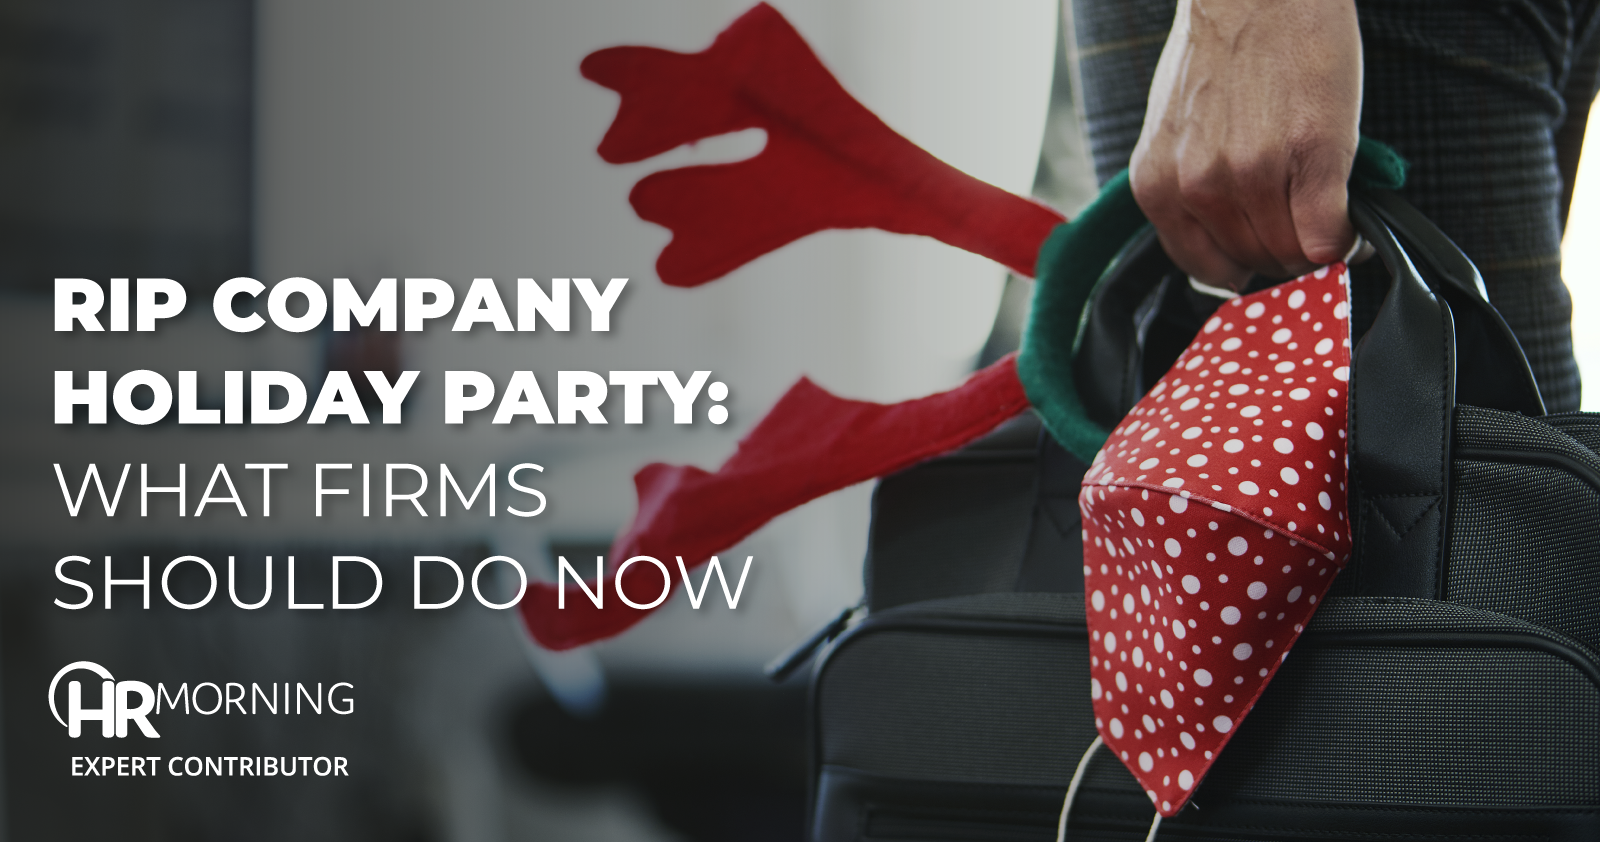 rip company holiday party what firms should do now